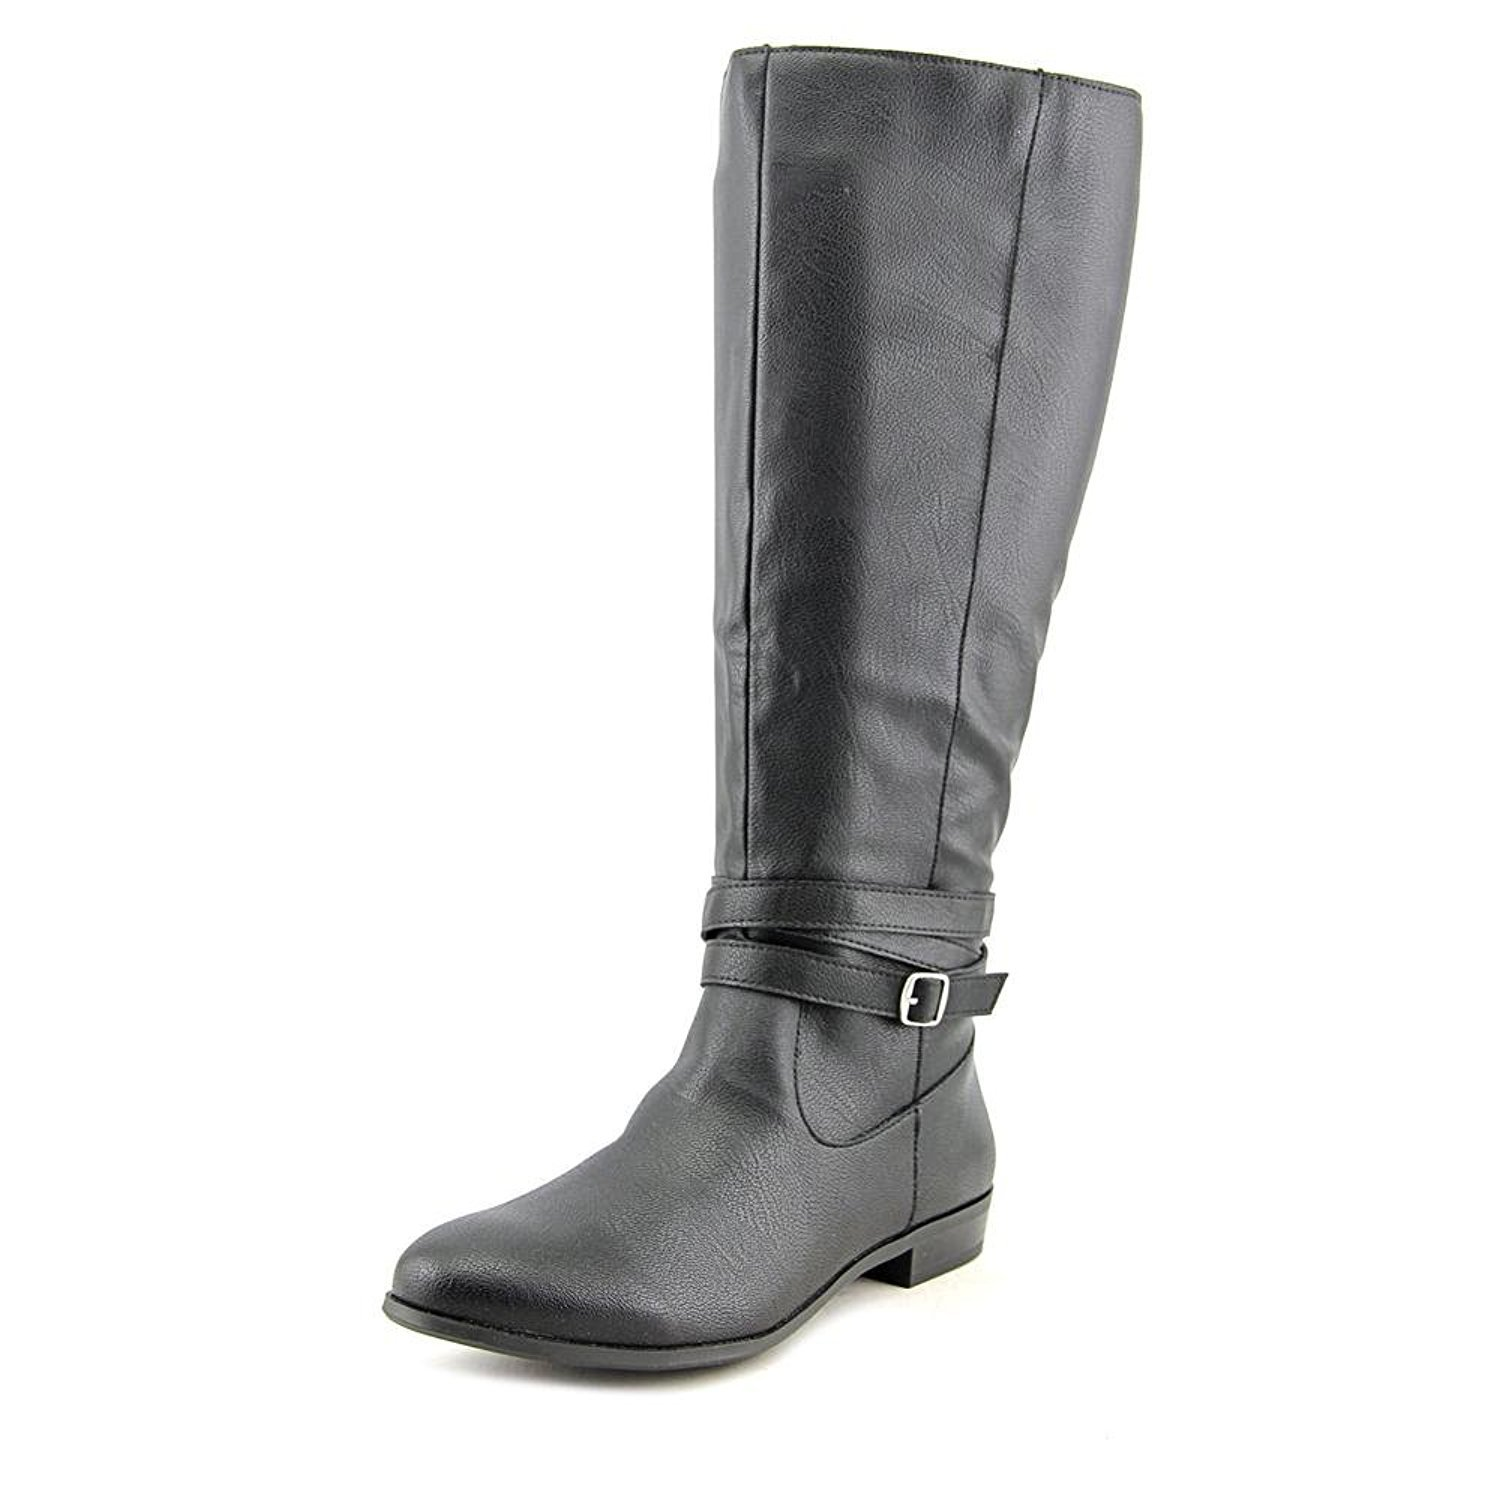 Style & Co. Womens Fridaa Round Toe Mid-Calf Riding Boots, Black, Size 7.0 by Style & Co.